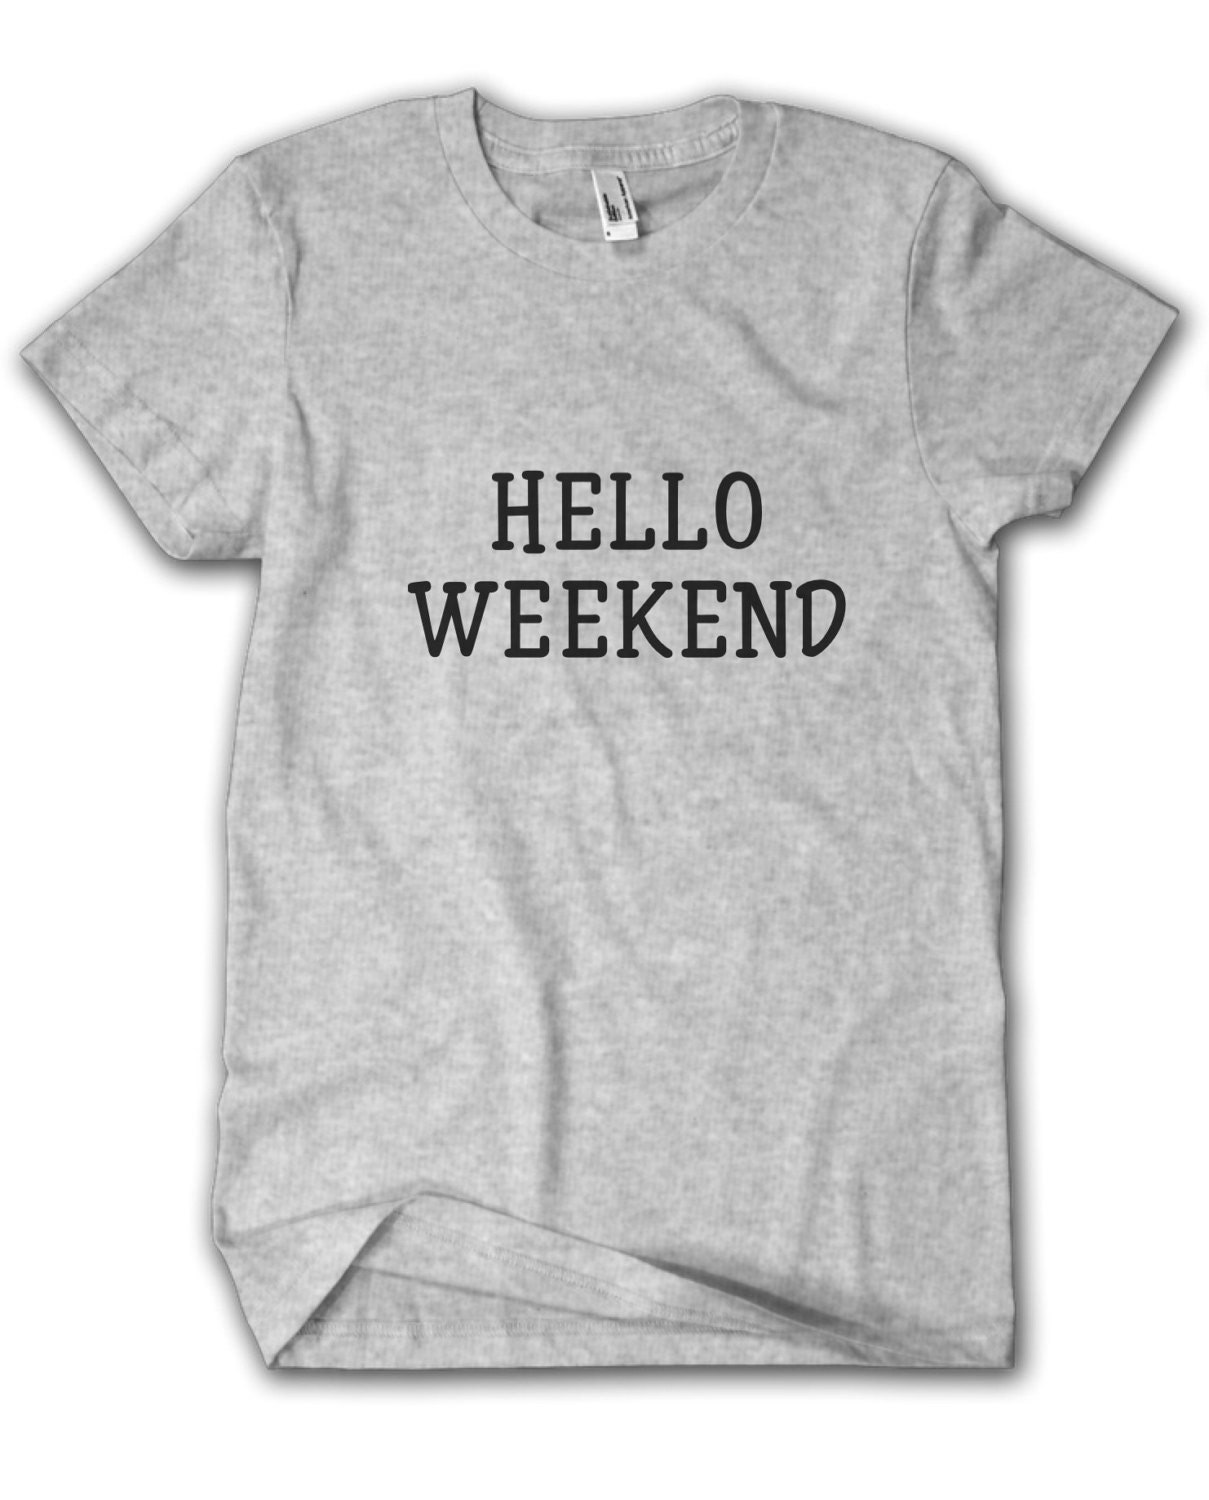 HELLO WEEKEND Tshirt  SXXL Ladies tshirt Mens tshirt  Unisex tshirt  Cotton tshirt Slogan tshirt